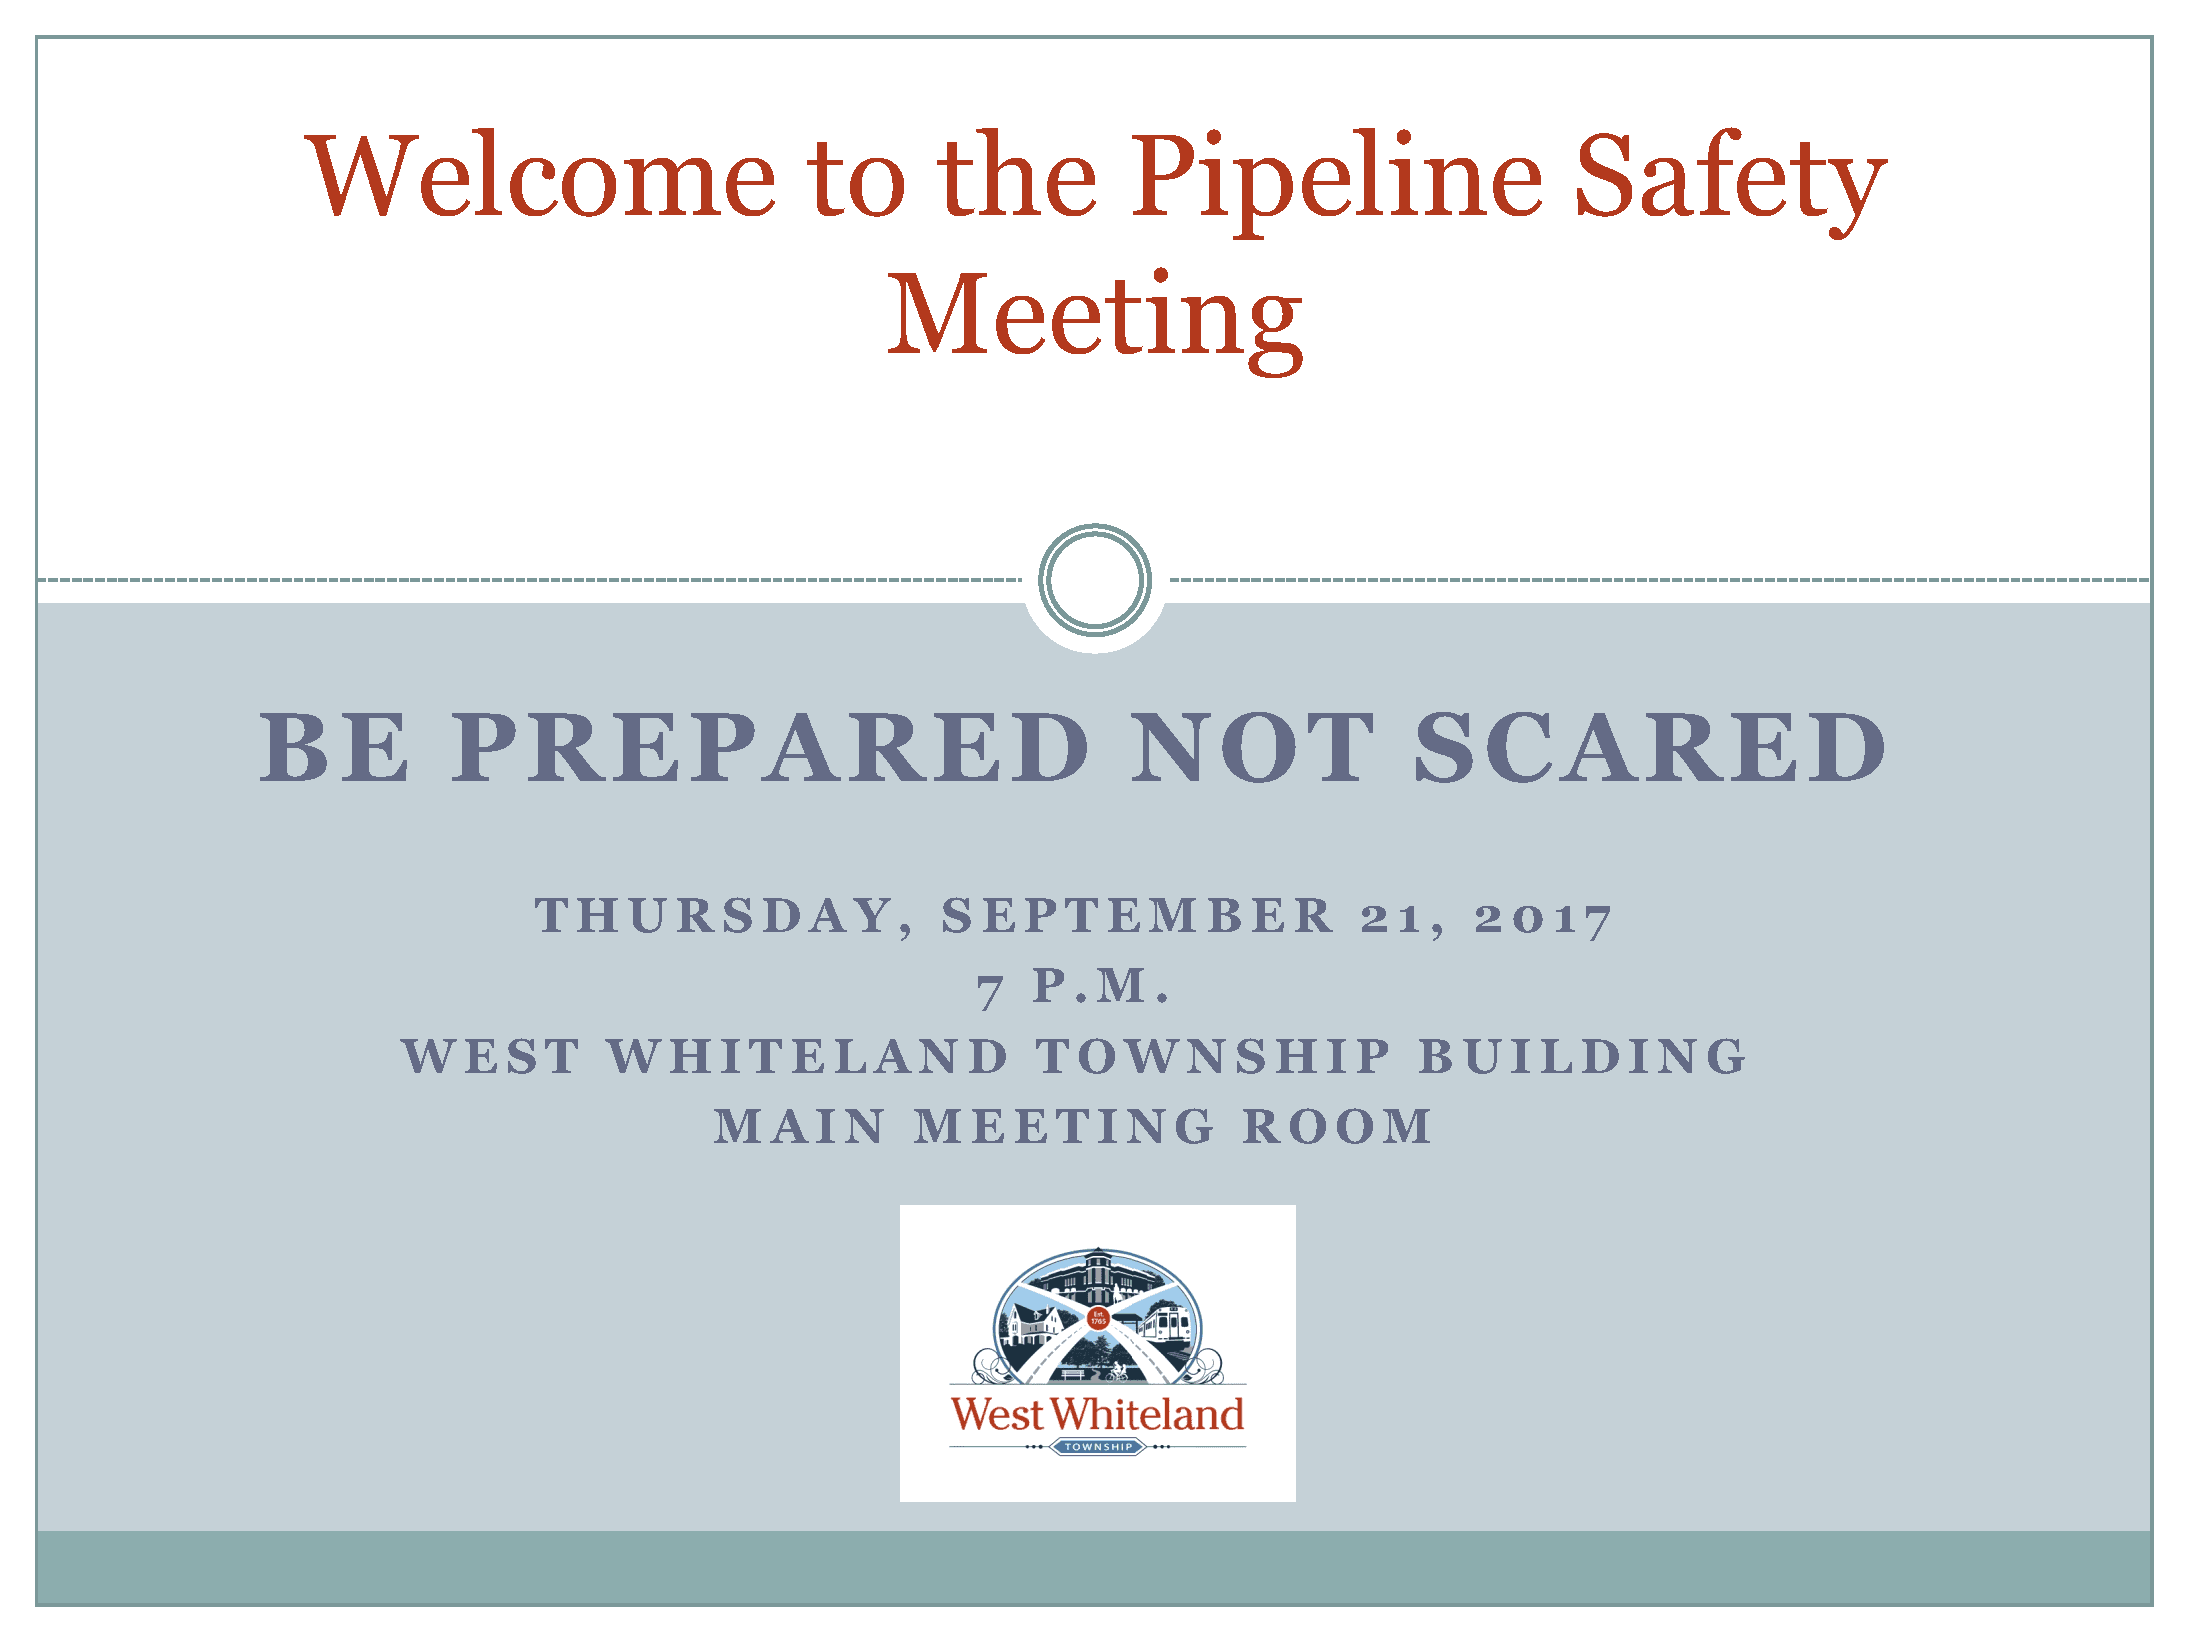 Pipeline Safety Mtg Cover Sheet